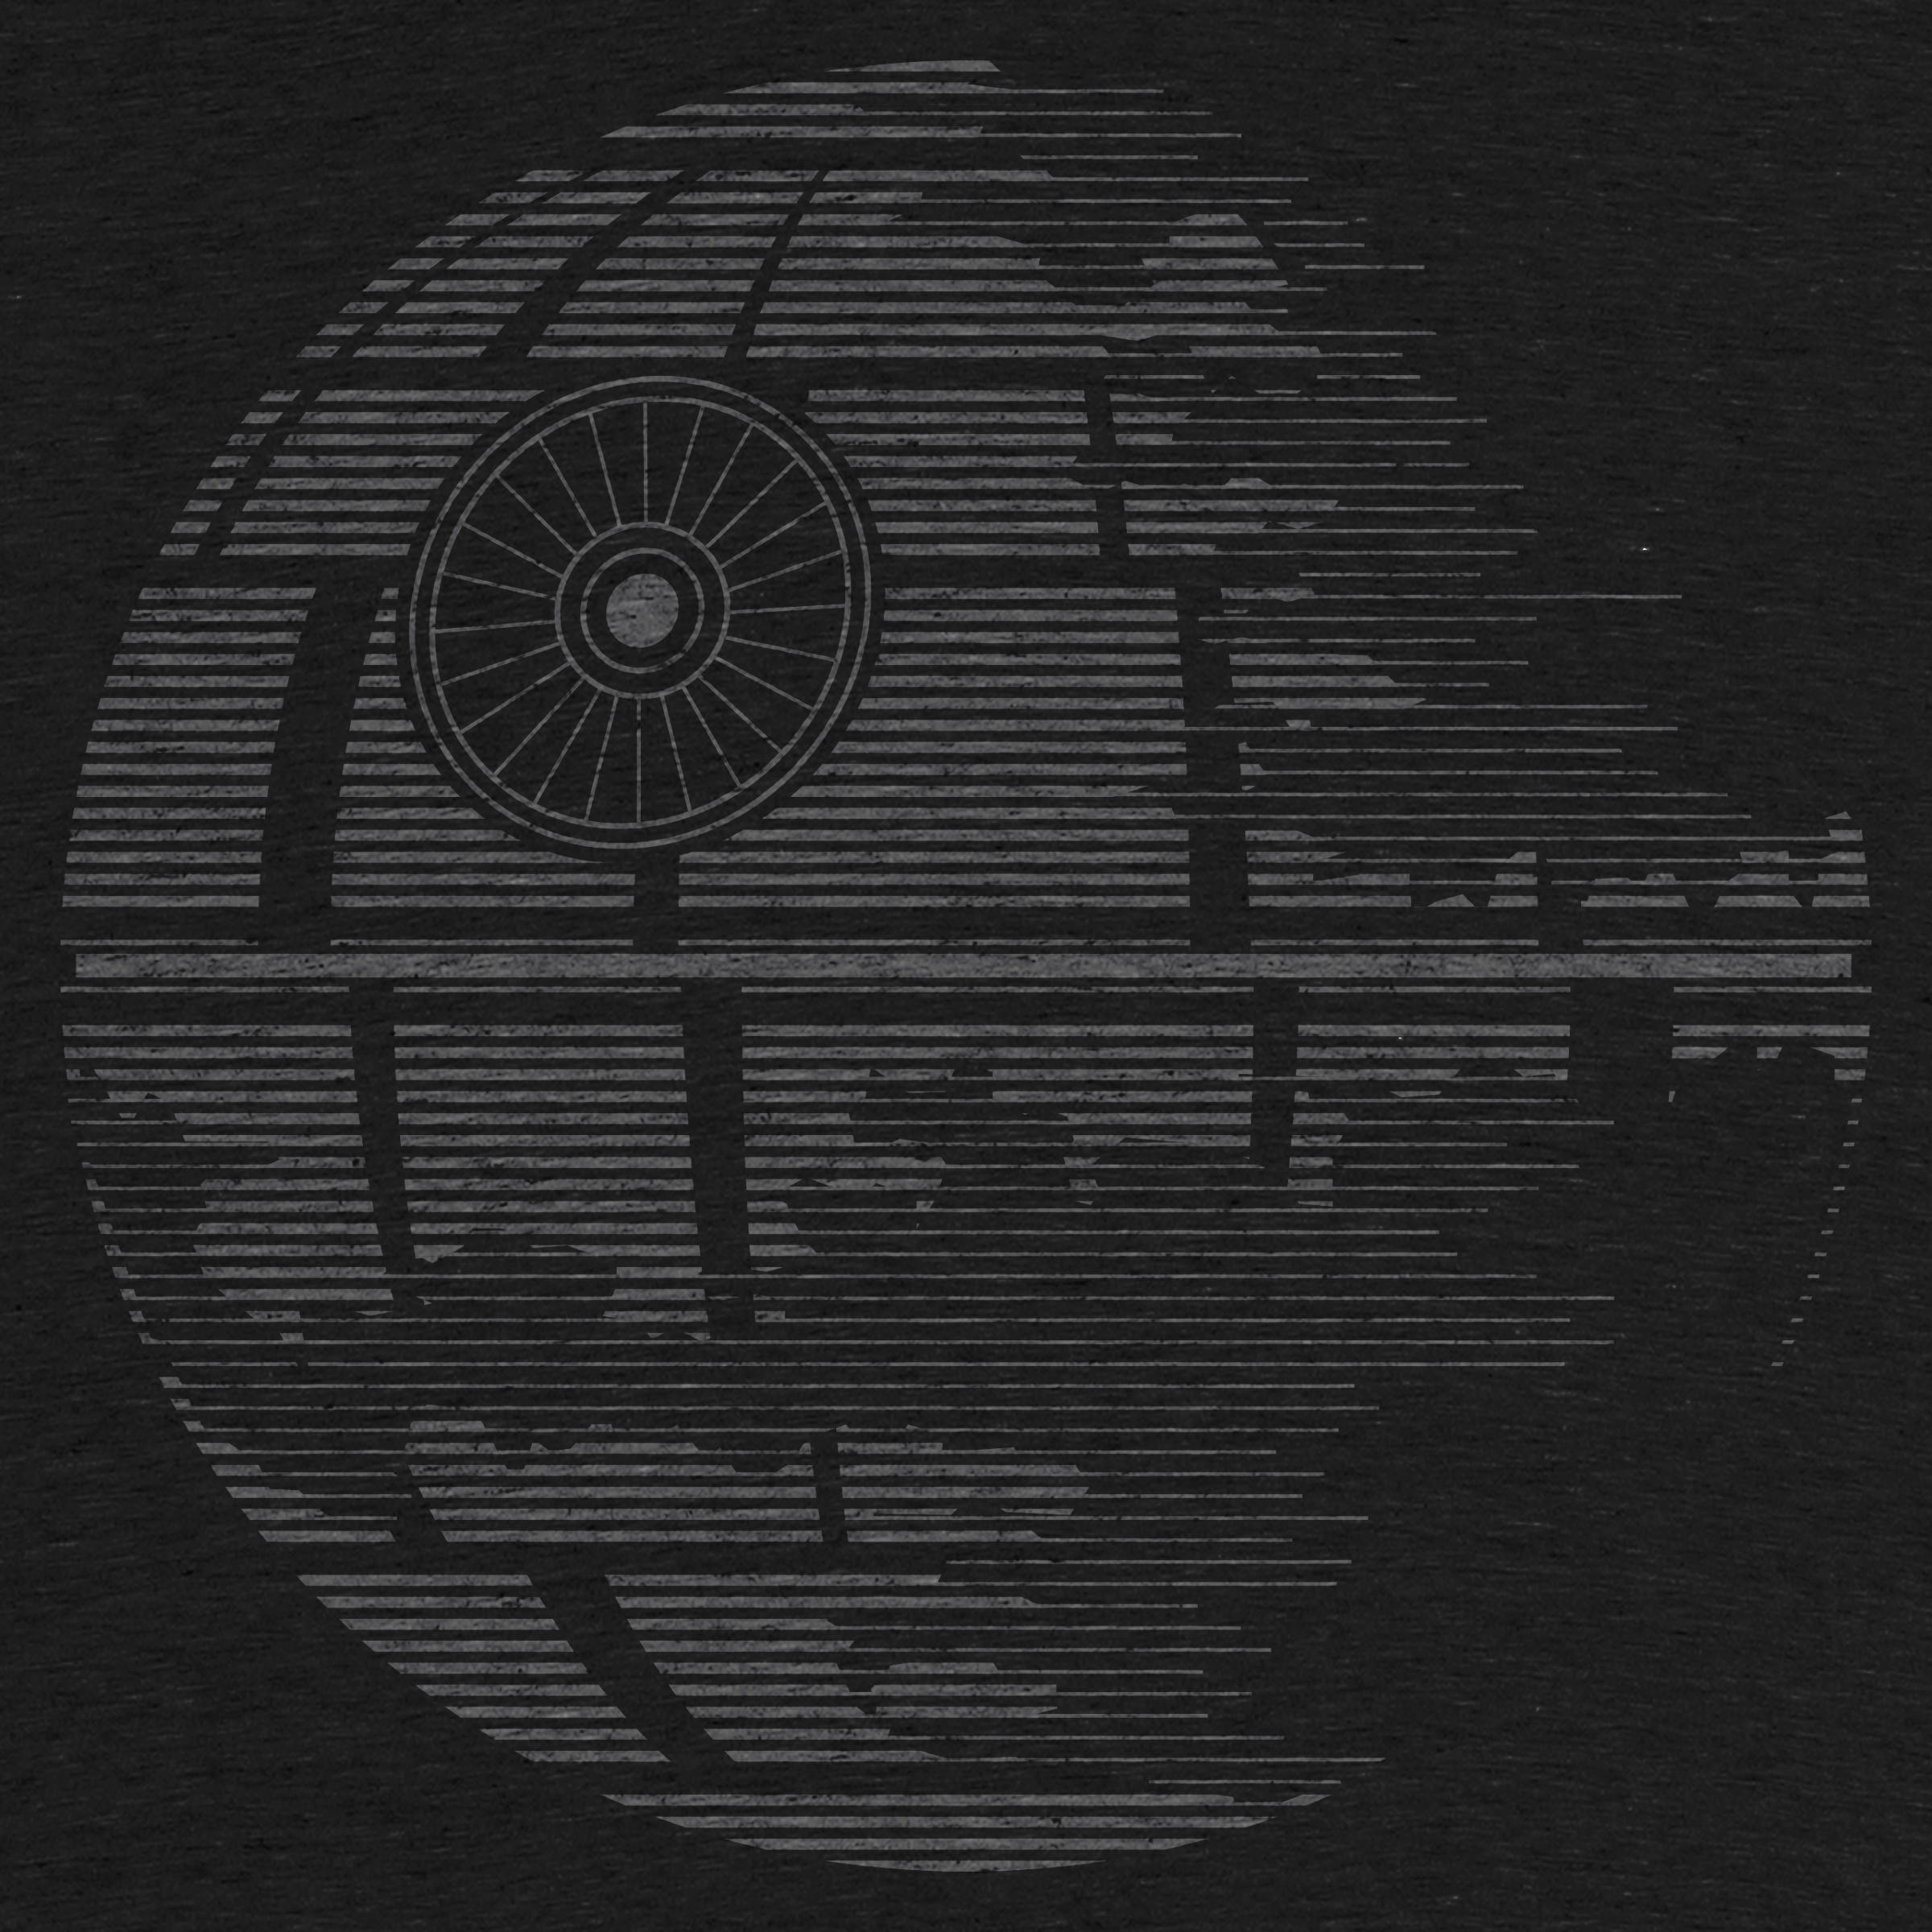 Cotton Bureau: That's No Moon